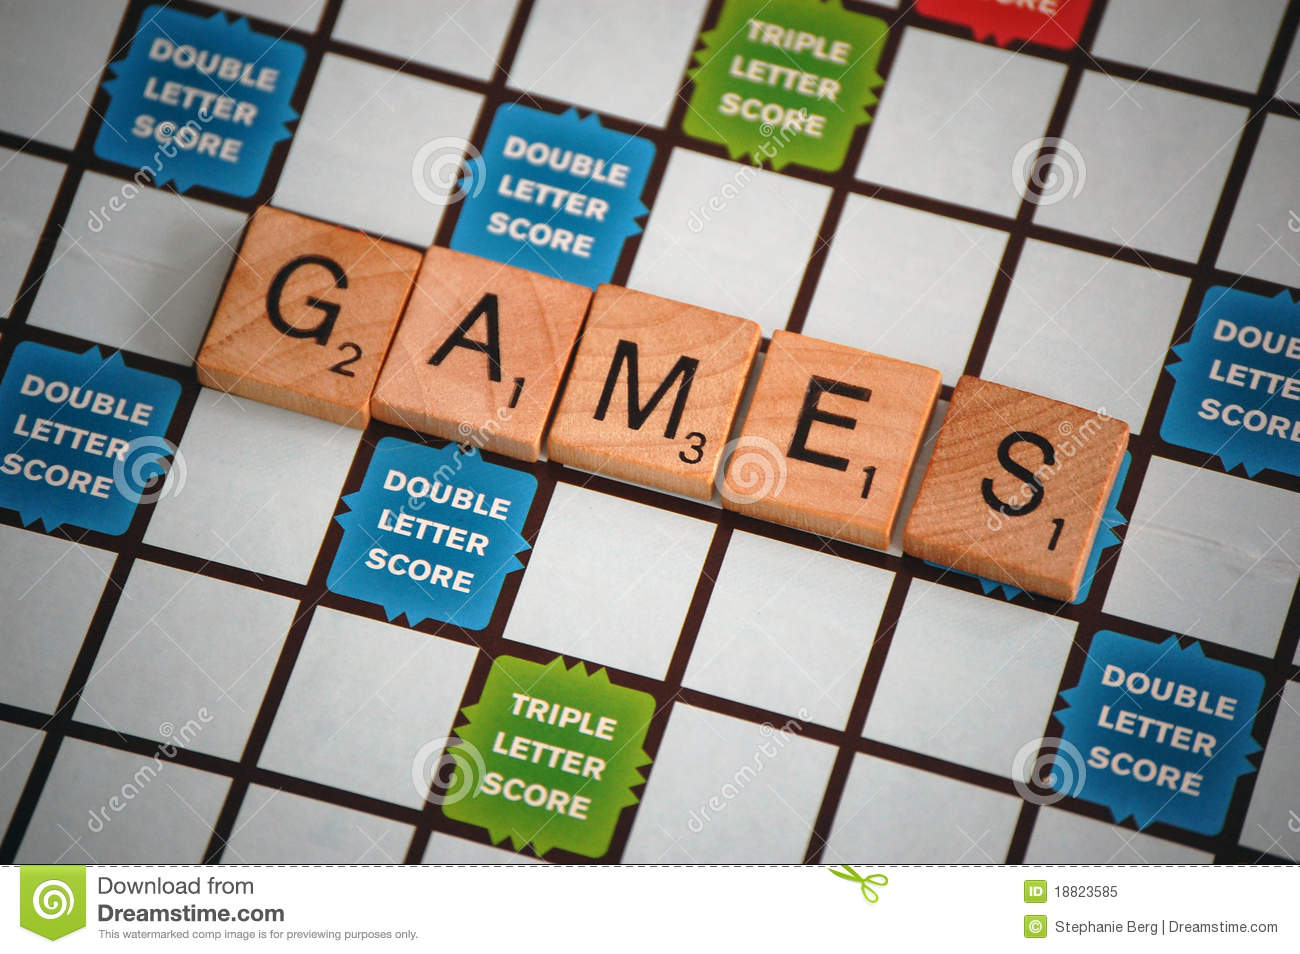 game of scrabble with word games